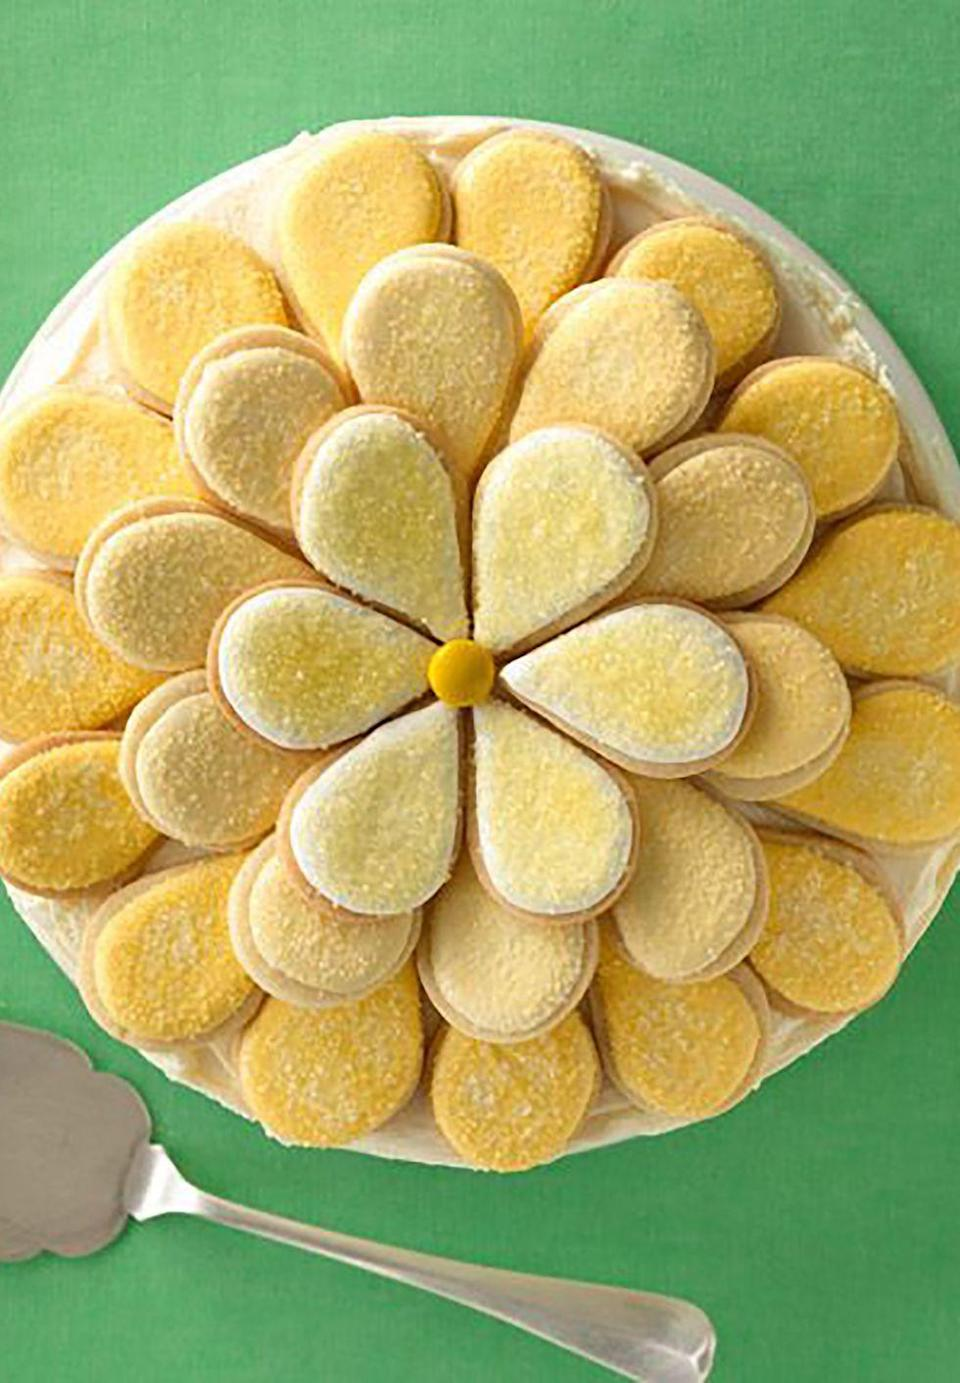 """<p>This bright and cheery cake (made with almond extract instead of vanilla) will make Mom's day!</p><p><a href=""""https://www.womansday.com/food-recipes/food-drinks/recipes/a11896/daisy-cake-recipe/"""" rel=""""nofollow noopener"""" target=""""_blank"""" data-ylk=""""slk:Get the Daisy Cake recipe."""" class=""""link rapid-noclick-resp""""><strong><em>Get the Daisy Cake recipe.</em></strong></a></p>"""